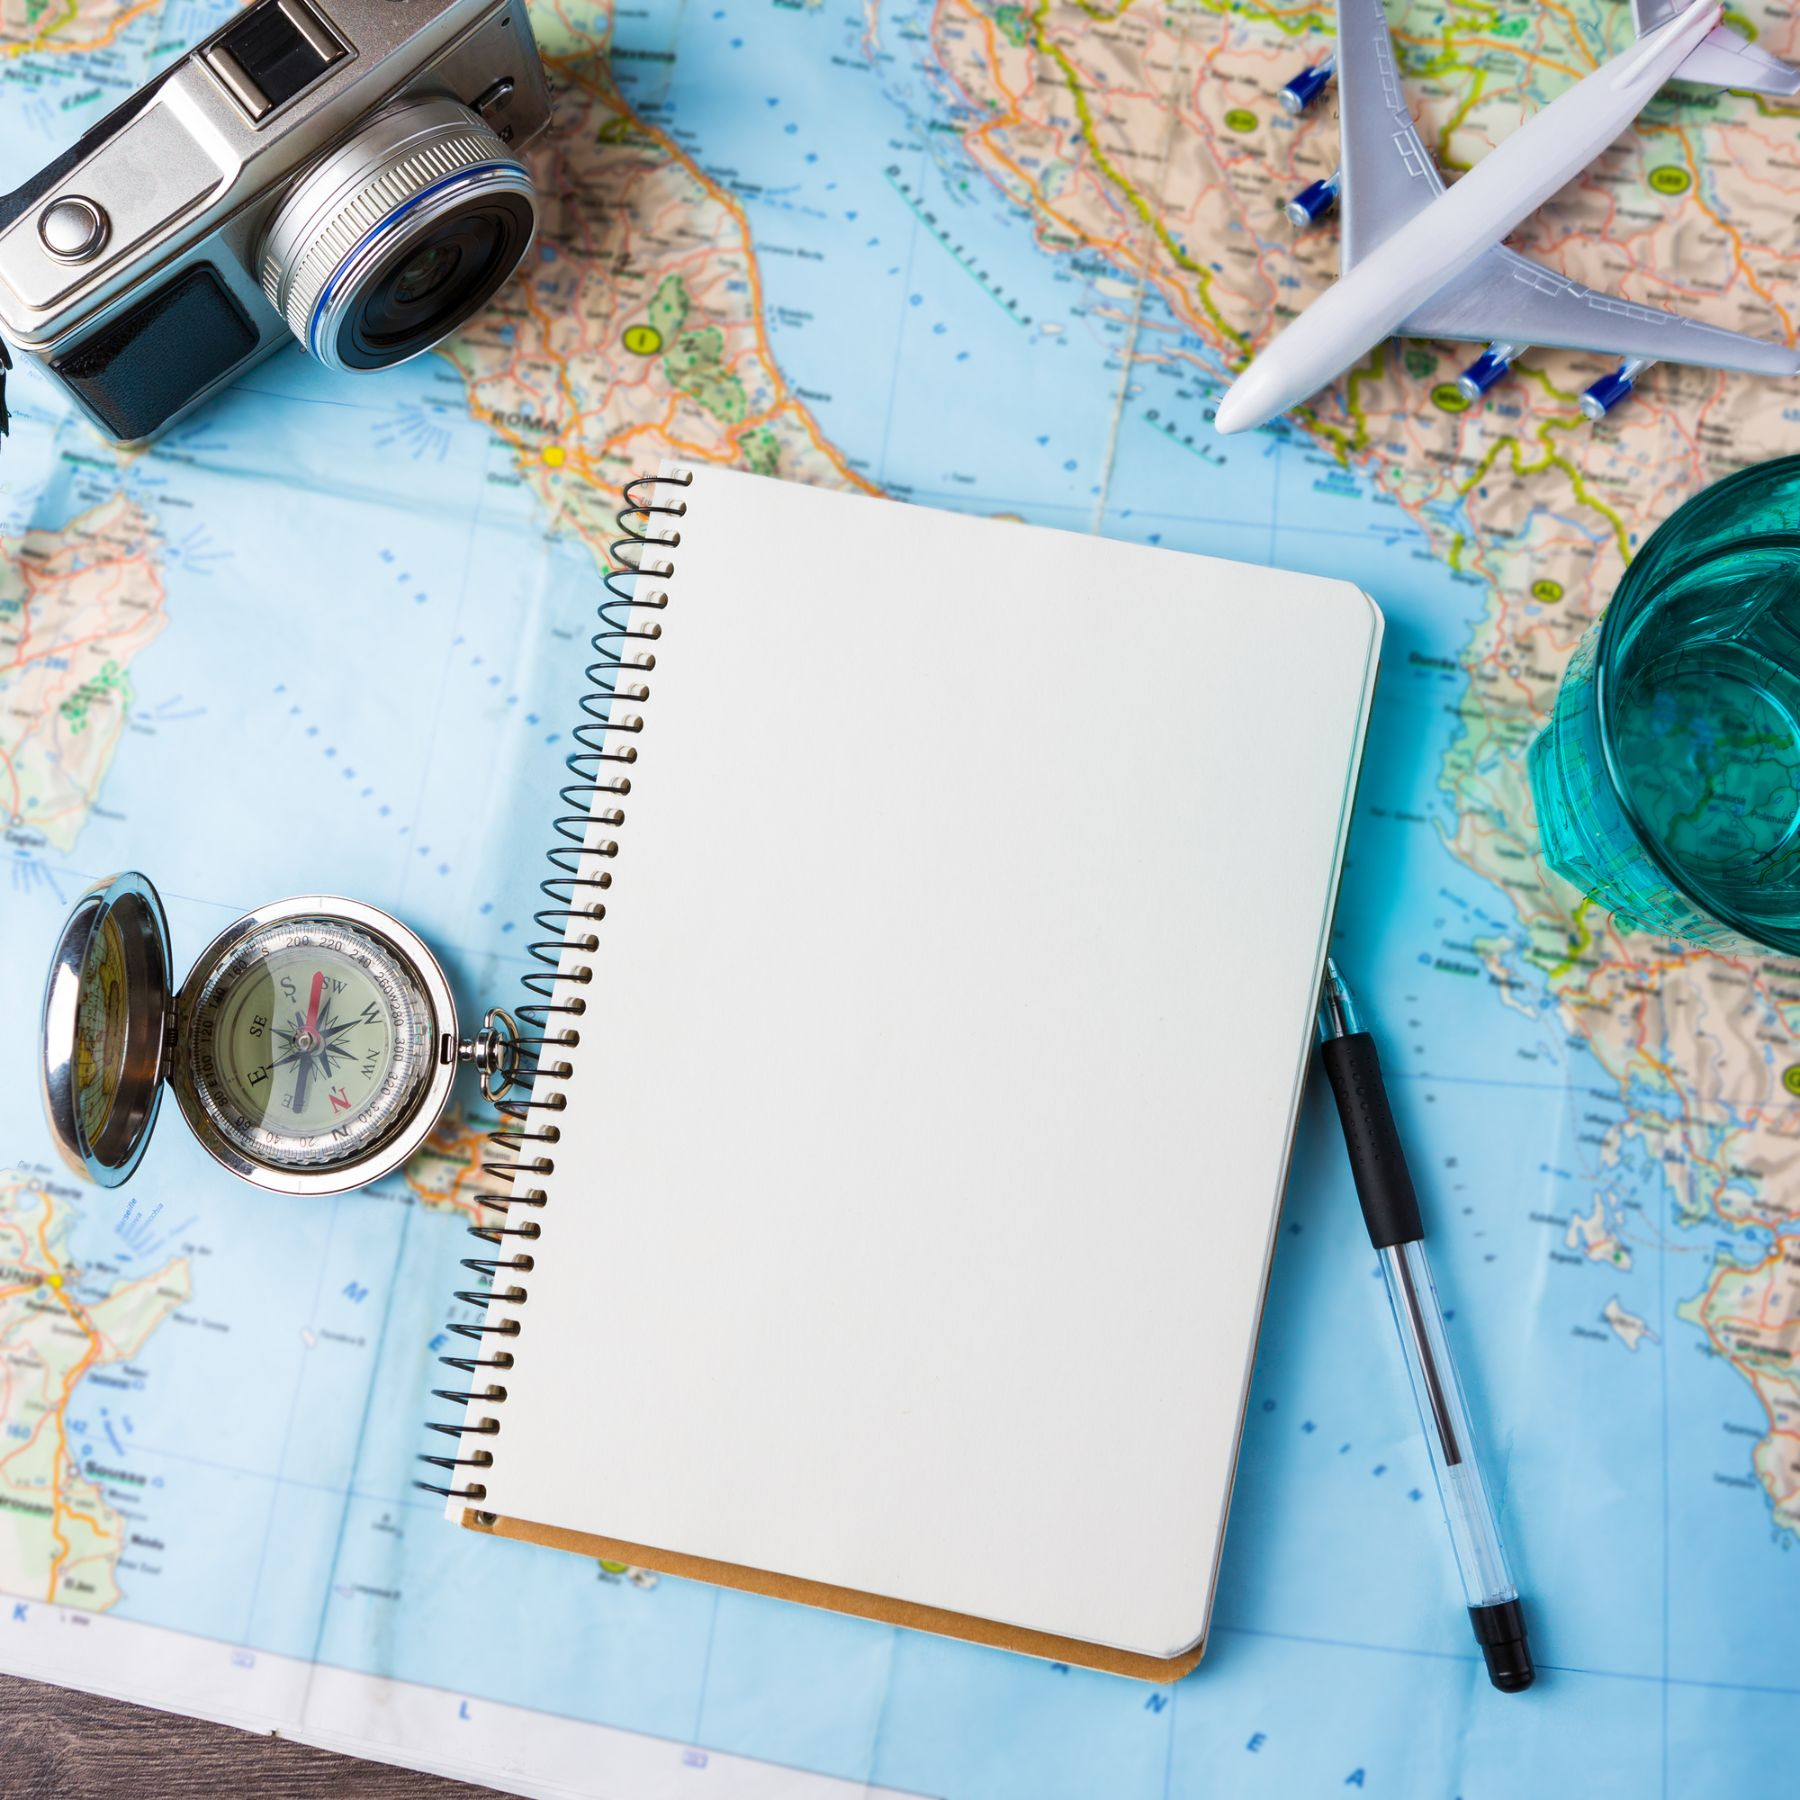 Notebook, camera, plane, pen and a compass on a map